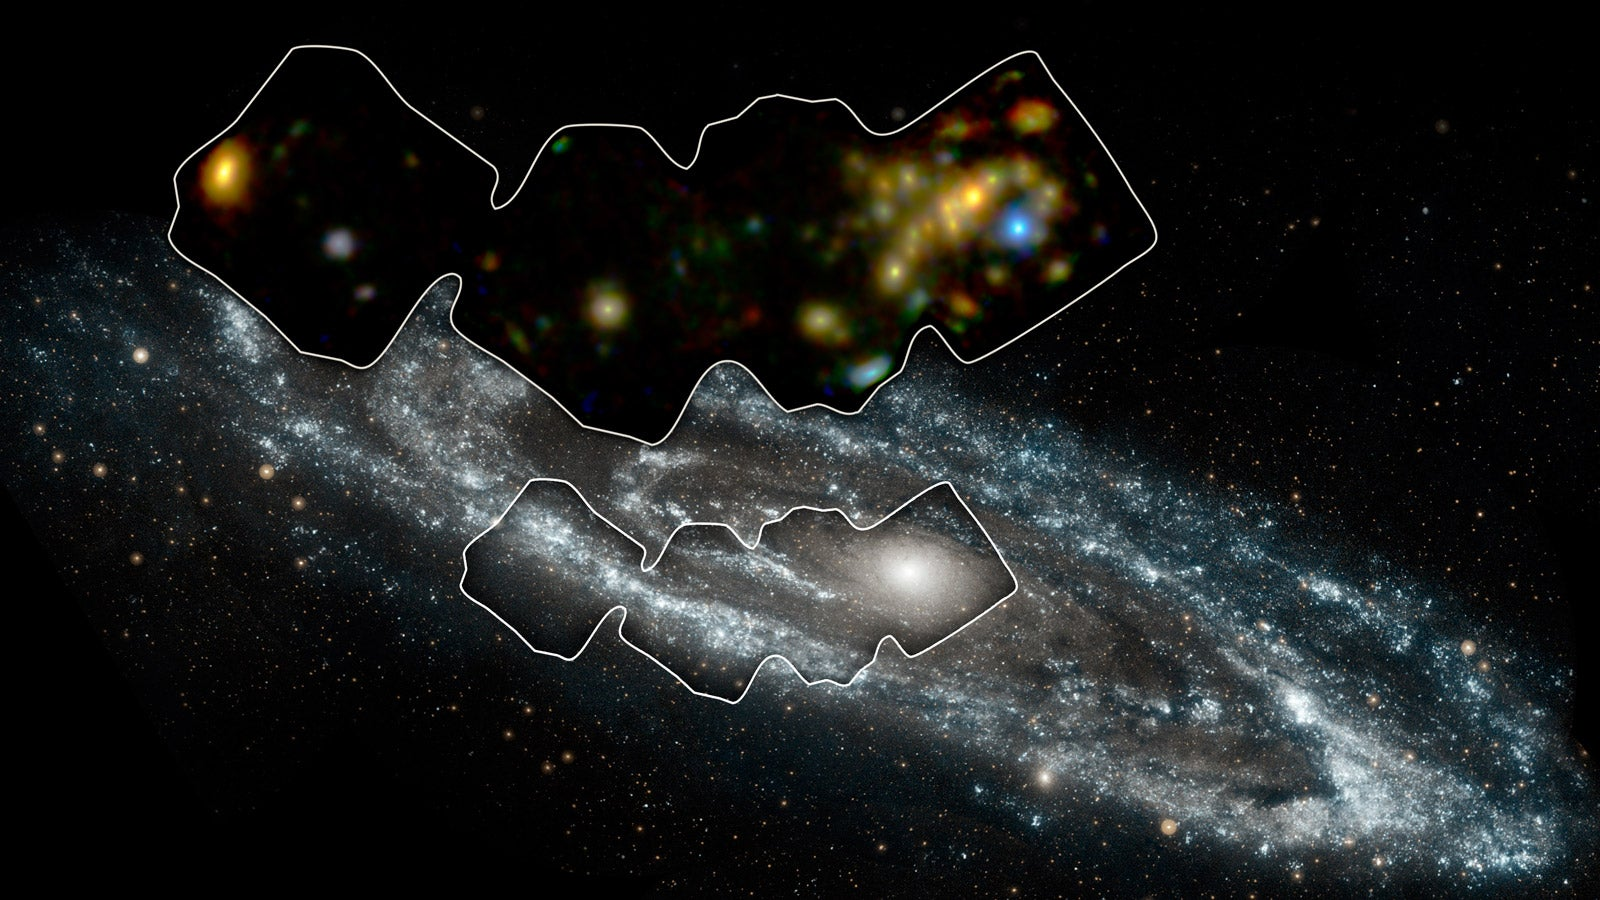 The Best Ever View of Our Closest Neighbouring Galaxy Has Something Very Strange In It